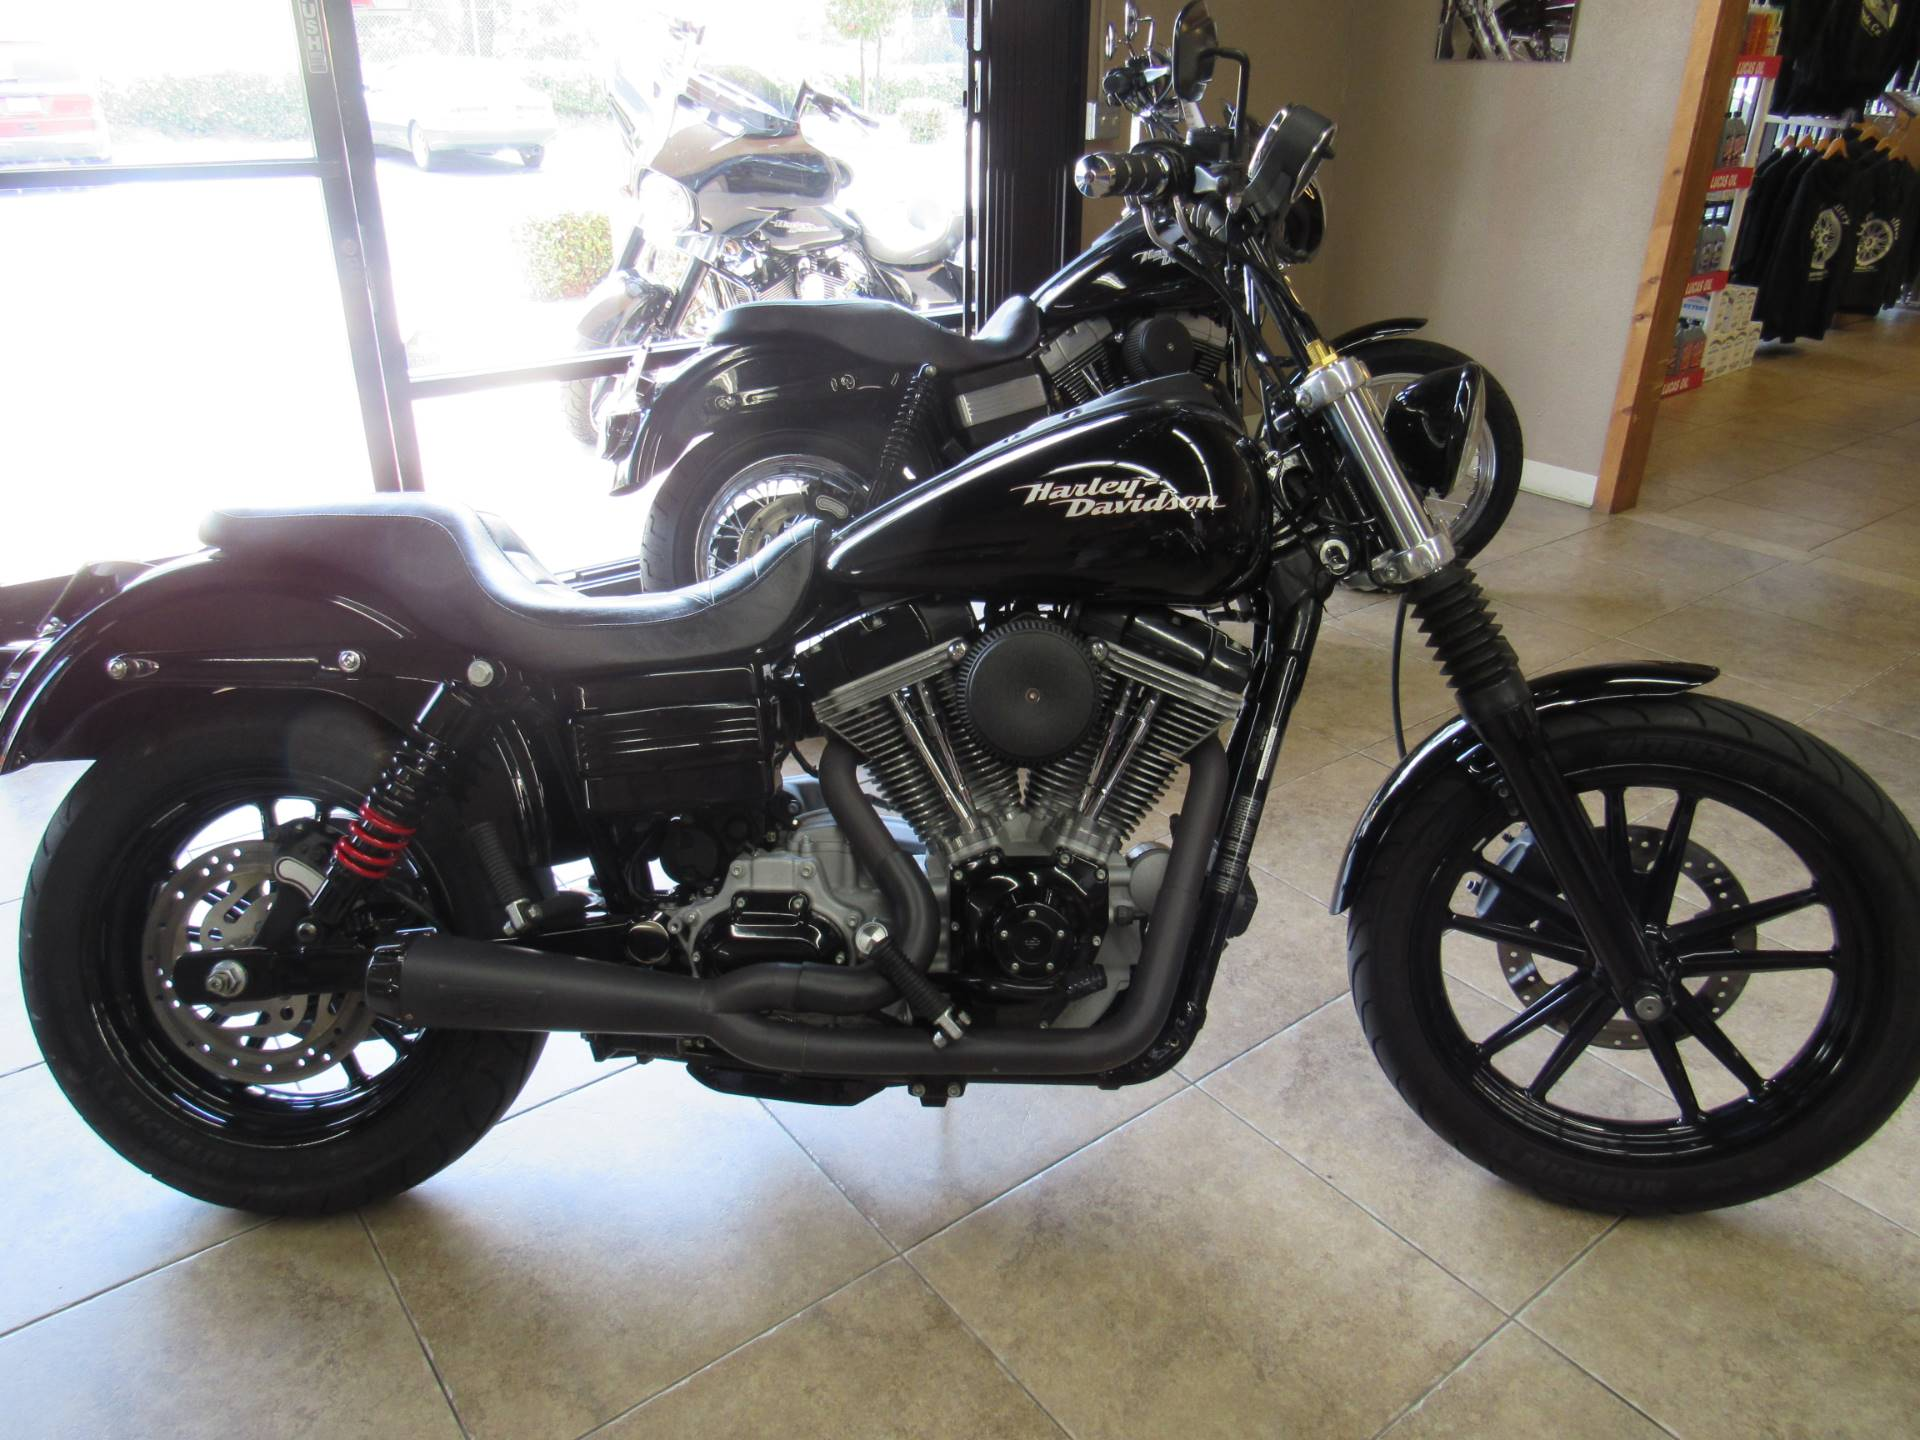 2007 Harley-Davidson Dyna® Super Glide® Custom in Temecula, California - Photo 1